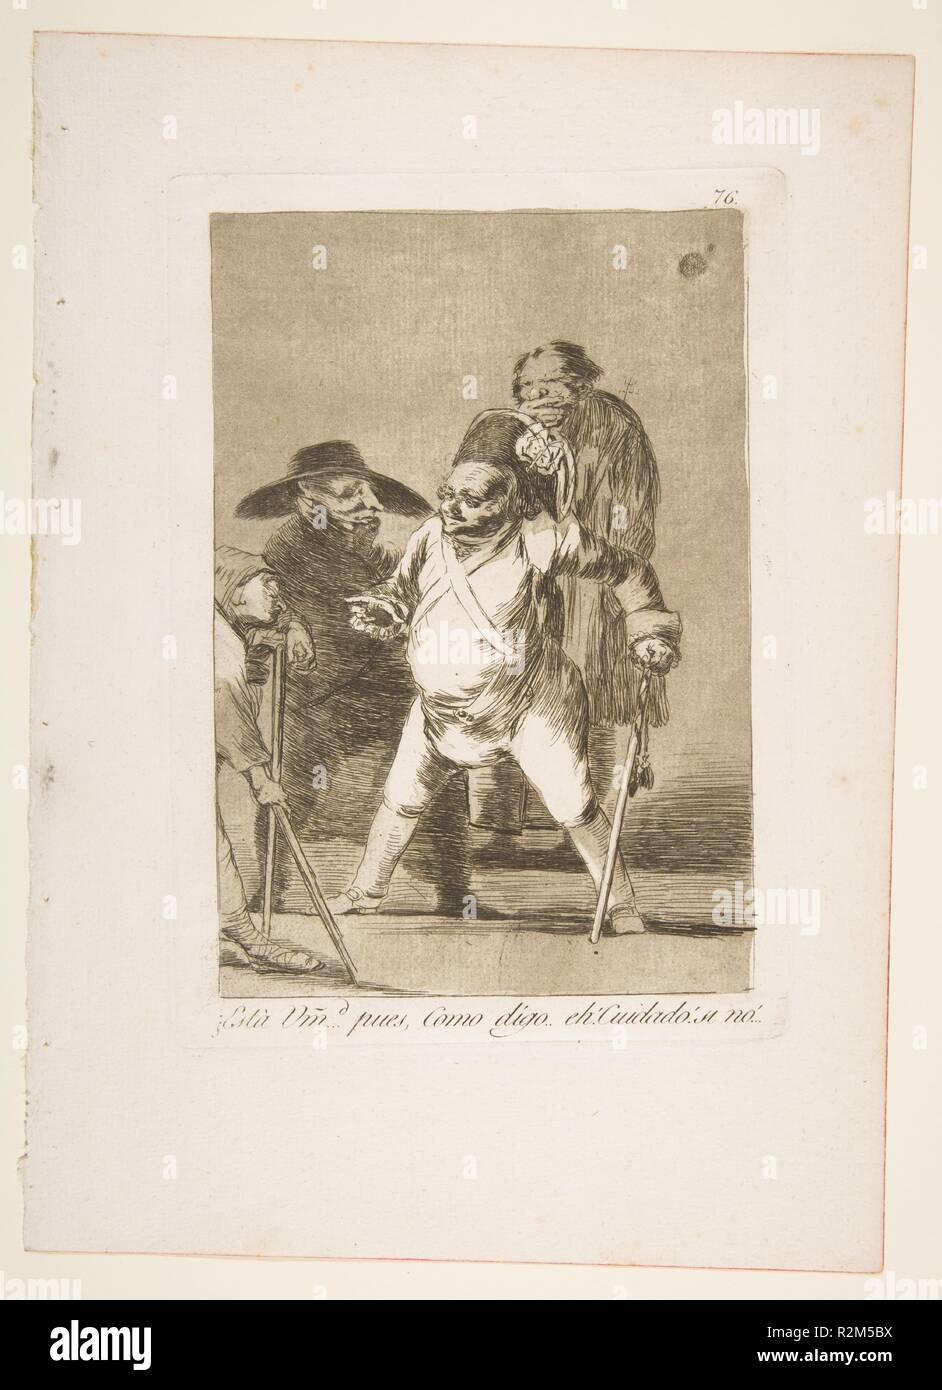 Plate 76 from 'Los Caprichos':You understand?... well, as I say... eh!  Look out! otherwise... (¿Està Umd...pues, Como digo..eh!  Cuidado! si no...). Artist: Goya (Francisco de Goya y Lucientes) (Spanish, Fuendetodos 1746-1828 Bordeaux). Dimensions: Plate: 8 3/8 x 5 7/8 in. (21.2 x 15 cm)  Sheet: 11 5/8 x 8 1/4 in. (29.5 x 21 cm). Series/Portfolio: Los Caprichos. Date: 1799. Museum: Metropolitan Museum of Art, New York, USA. - Stock Image